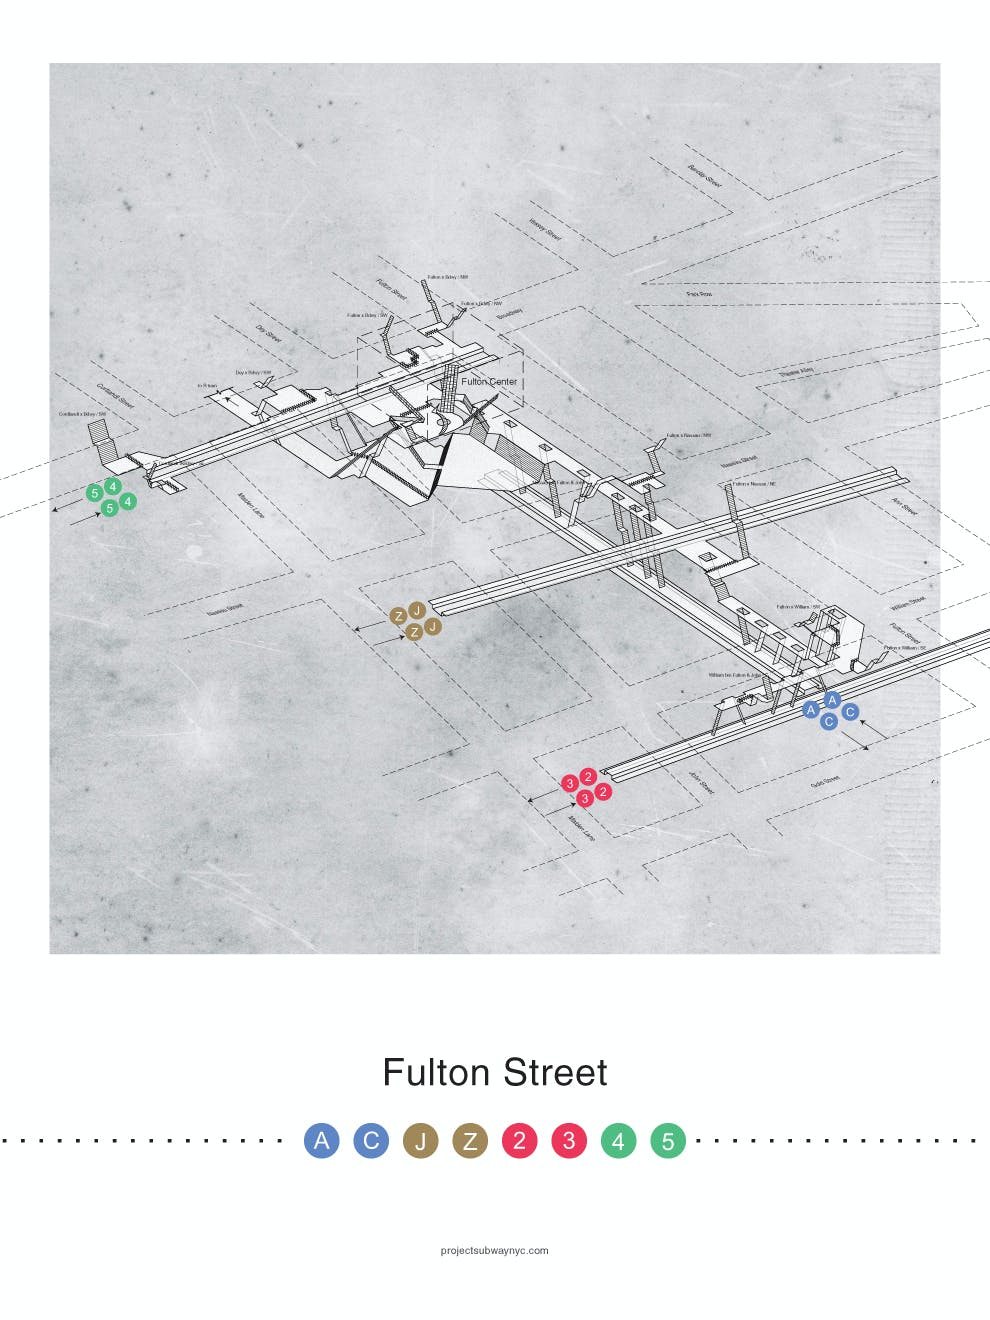 Nyc Street Subway Map.Cut Away Confusion From Your Nyc Commute With These Beautiful Subway